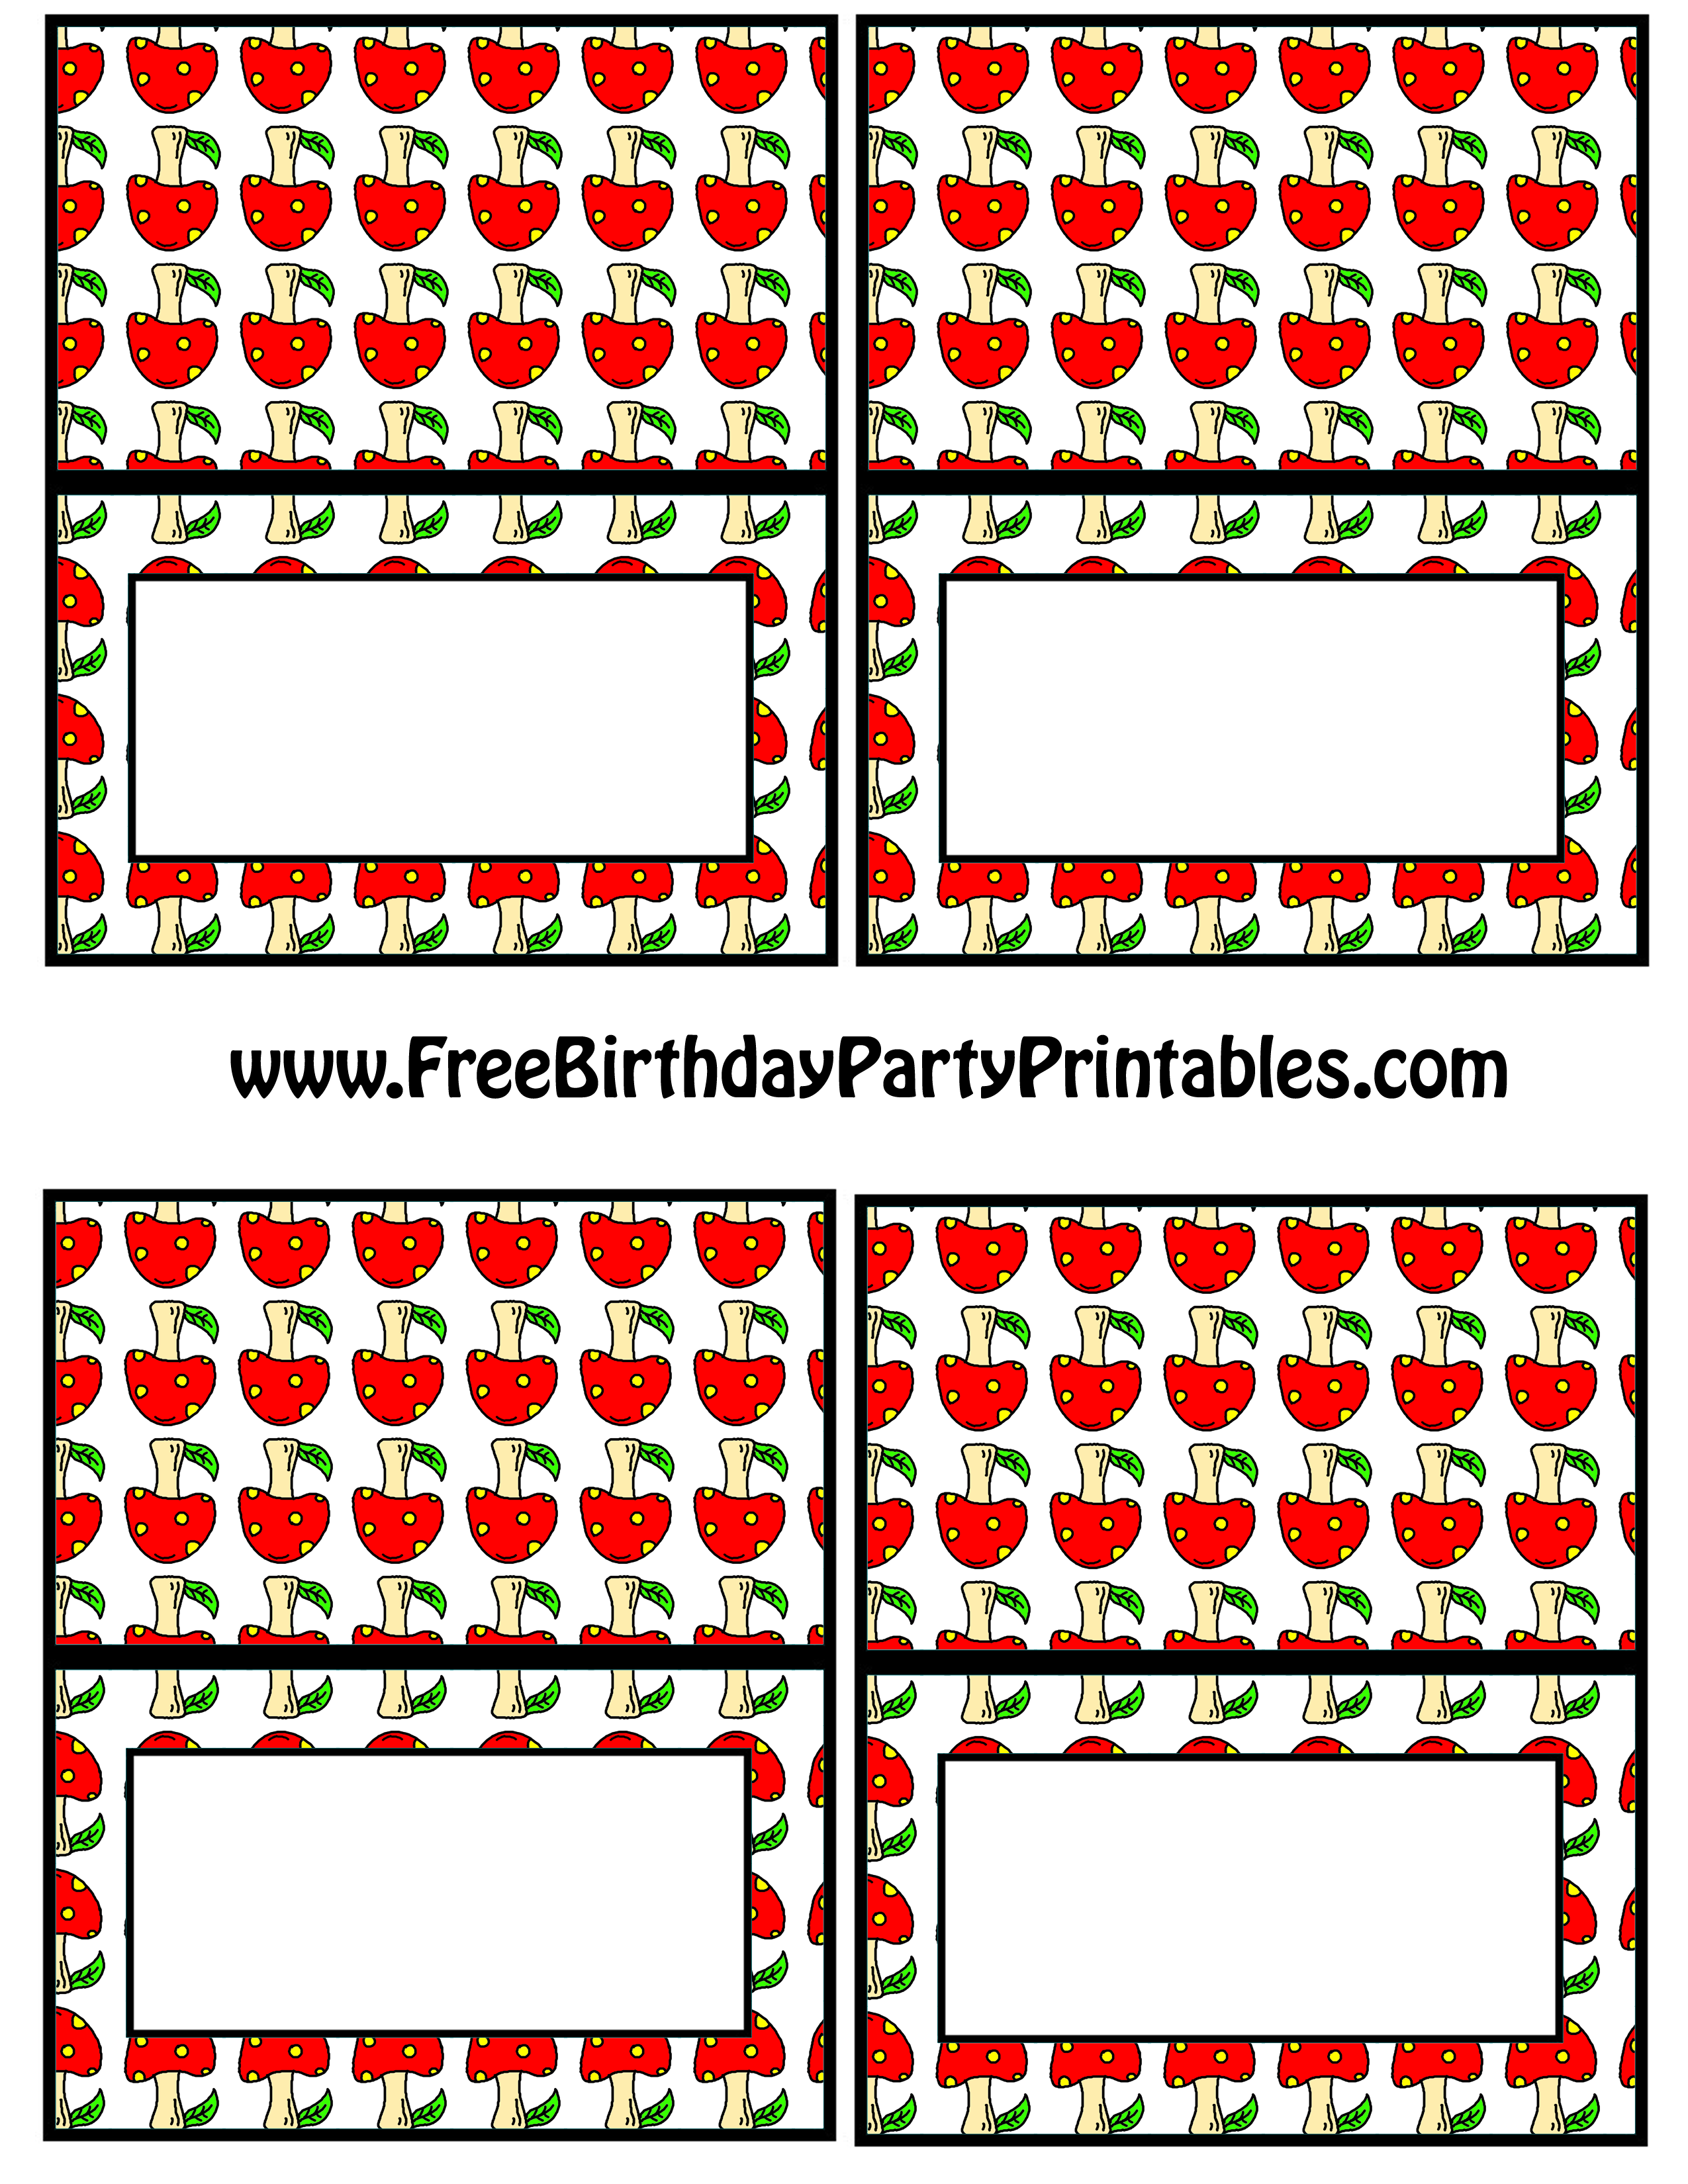 Little Red Riding Hood Free Birthday Party Printables